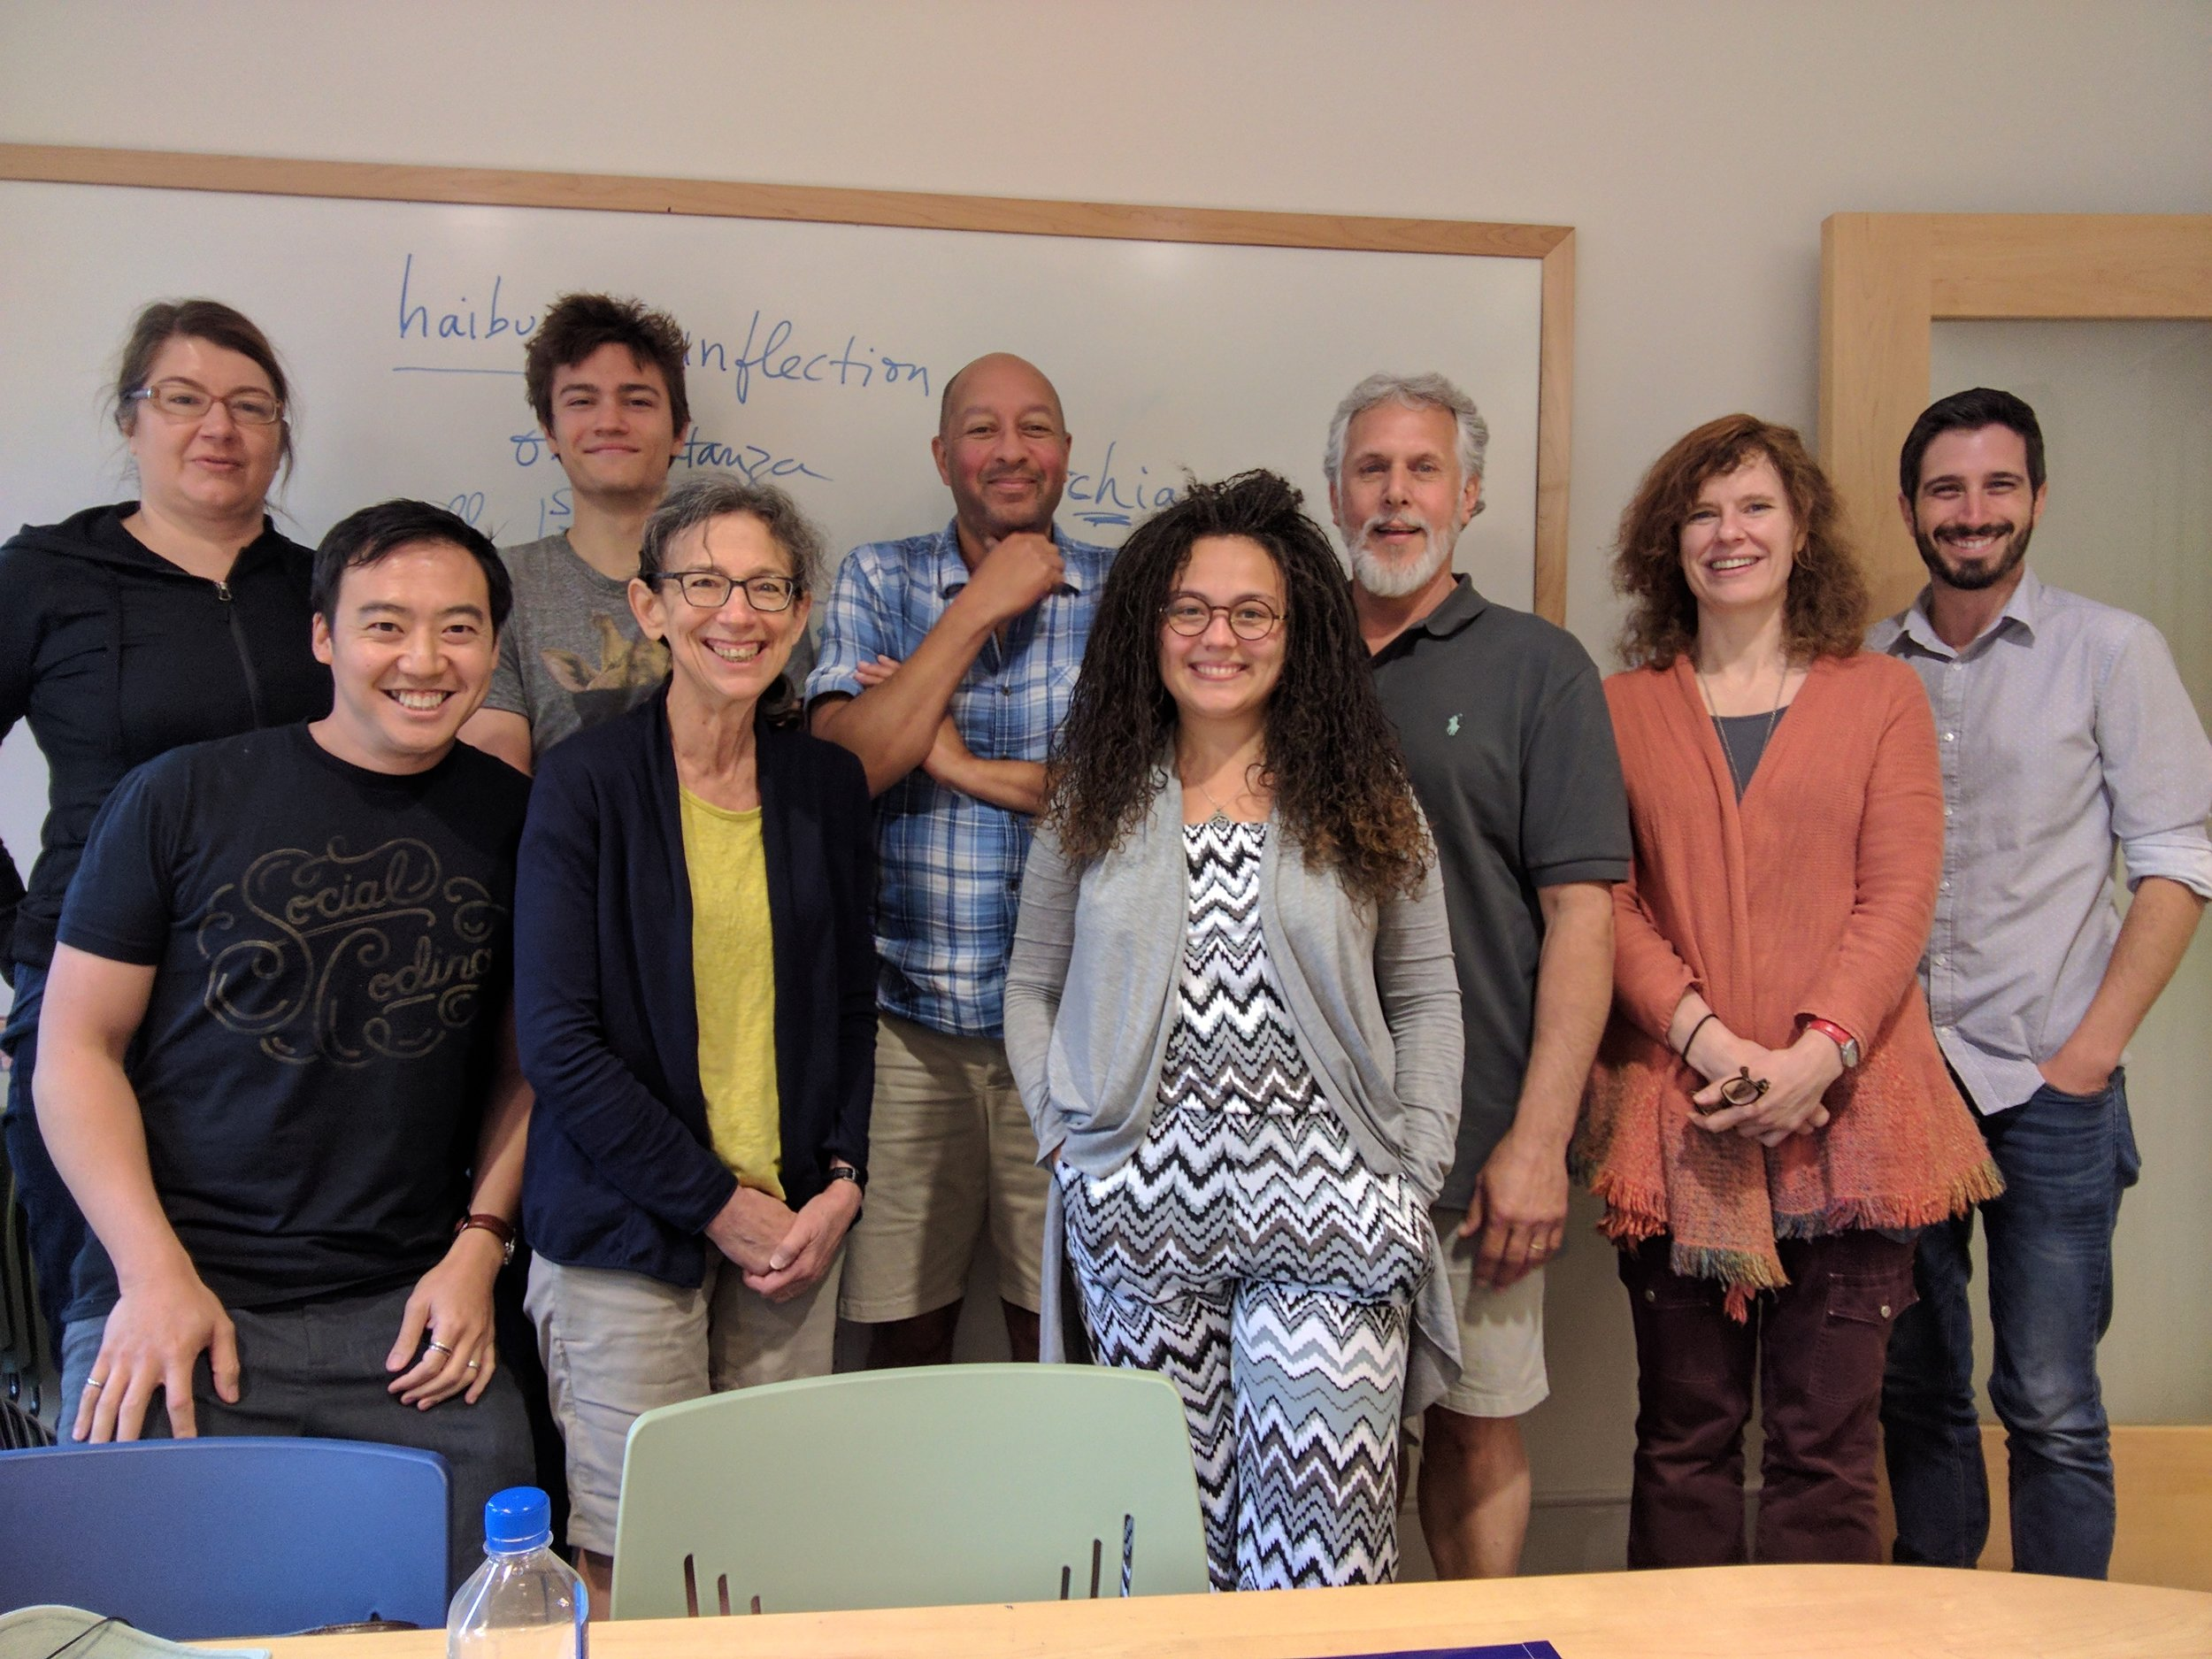 A stunning class of creativity, thanks to our fearless leader. Sasha, Me, Kyle, Pam, Carl Phillips, Britny, Lou, Martha, and our Kenyon Review Fellow, Jayme Ringleb.